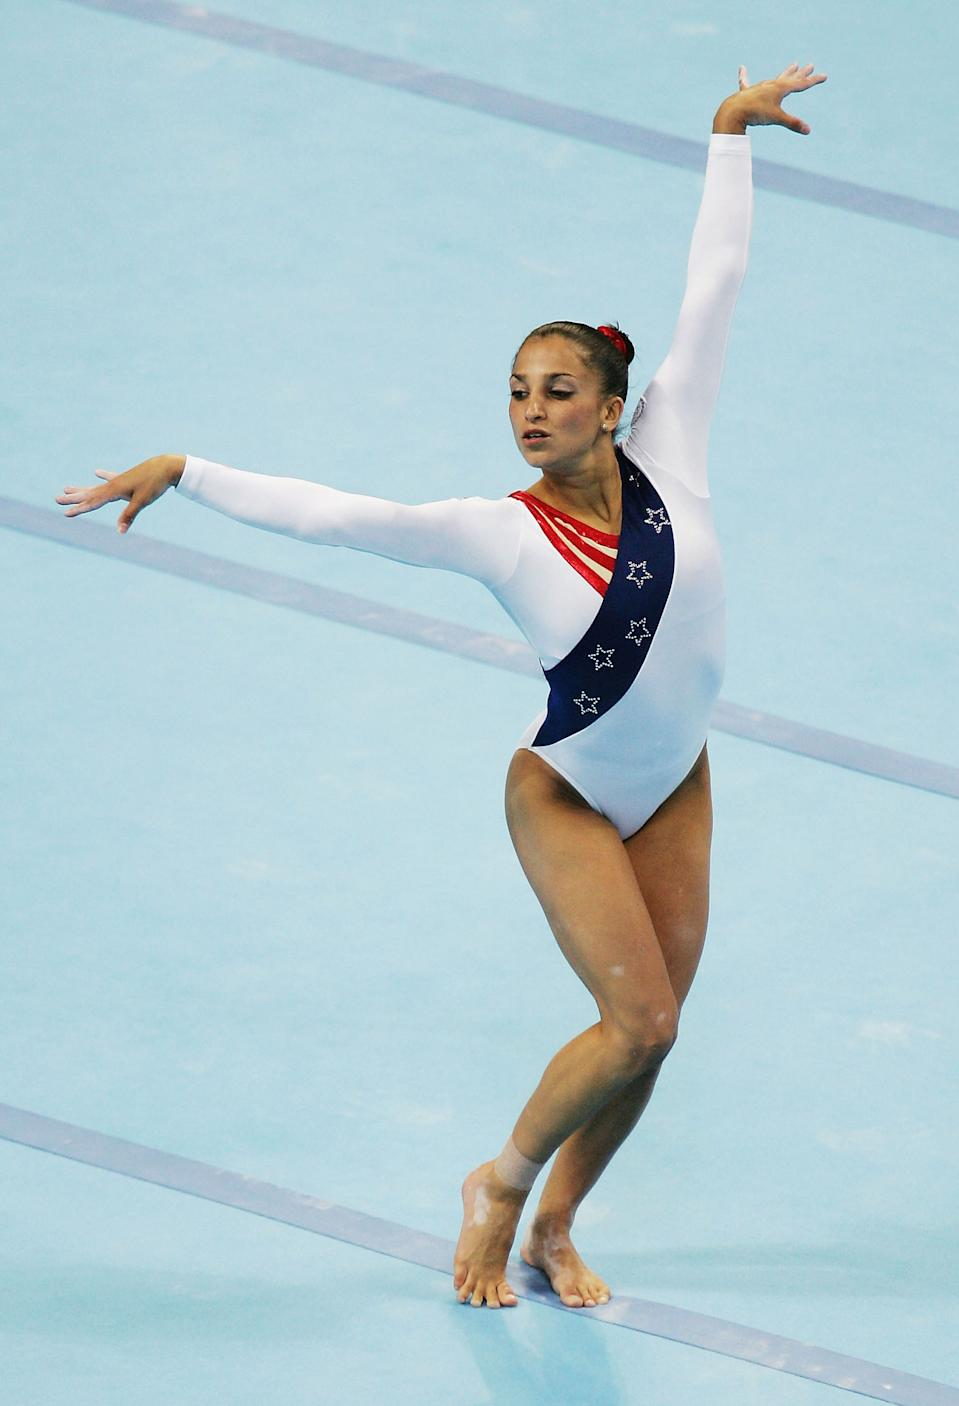 ATHENS - AUGUST 17: Mohini Bhardwaj of the United States competes in the floor excersize at the women's artistic gymnastics team final competition on August 17, 2004 during the Athens 2004 Summer Olympic Games at the Olympic Sports Complex Indoor Hall in Athens, Greece. (Photo by Andy Lyons/Getty Images)